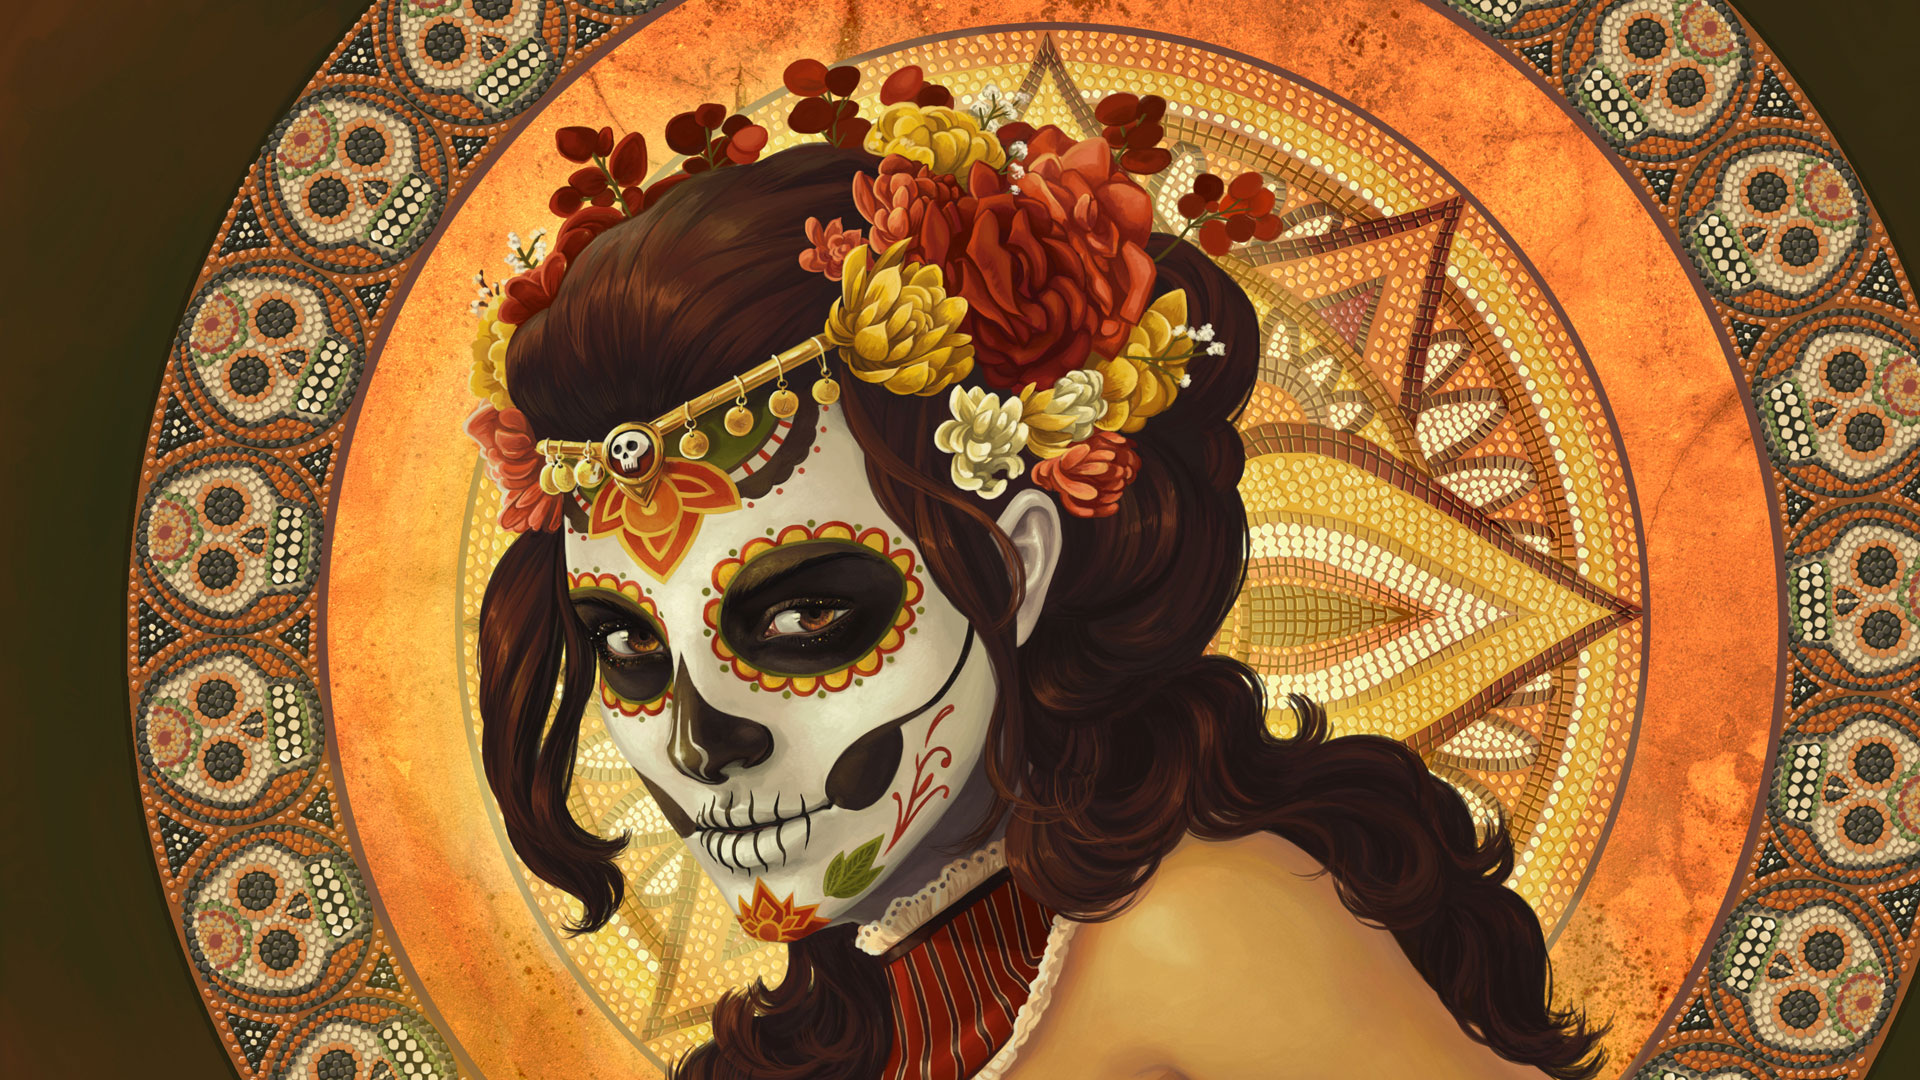 Day-of-the-Dead-Dia-de-los-muertos-Rockabilly-Pin-Up-girl-pink-hair-Lowbrow-Tattoo-art-PRINT-pink-su-wallpaper-wpc9004055